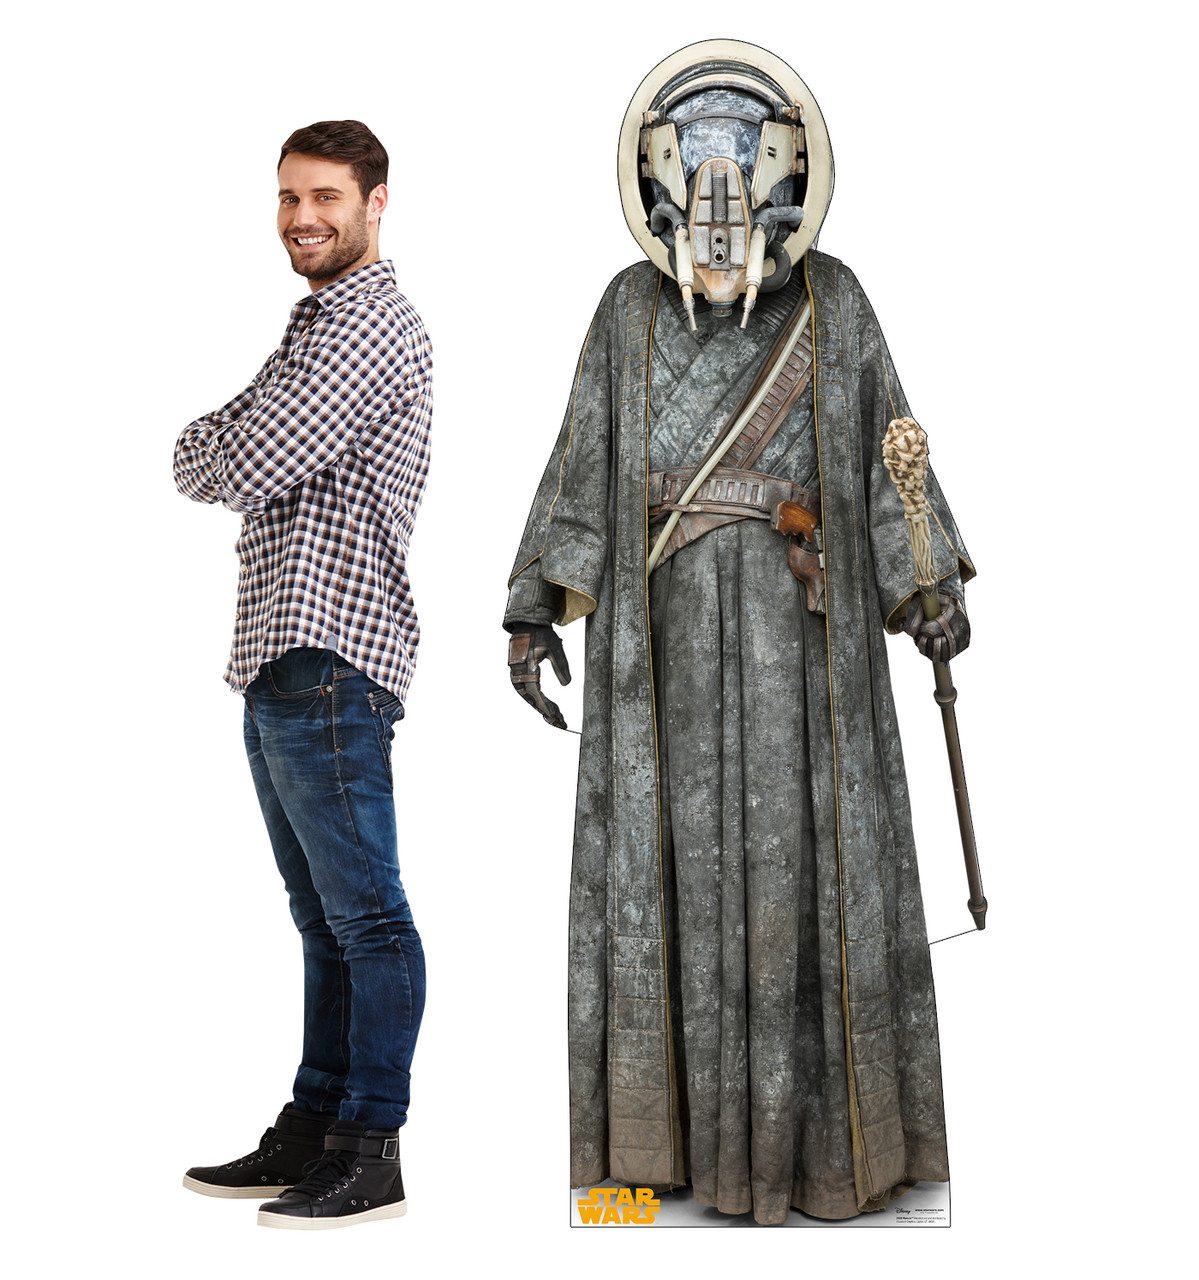 Moloch™ Life-size cardboard standee with model.